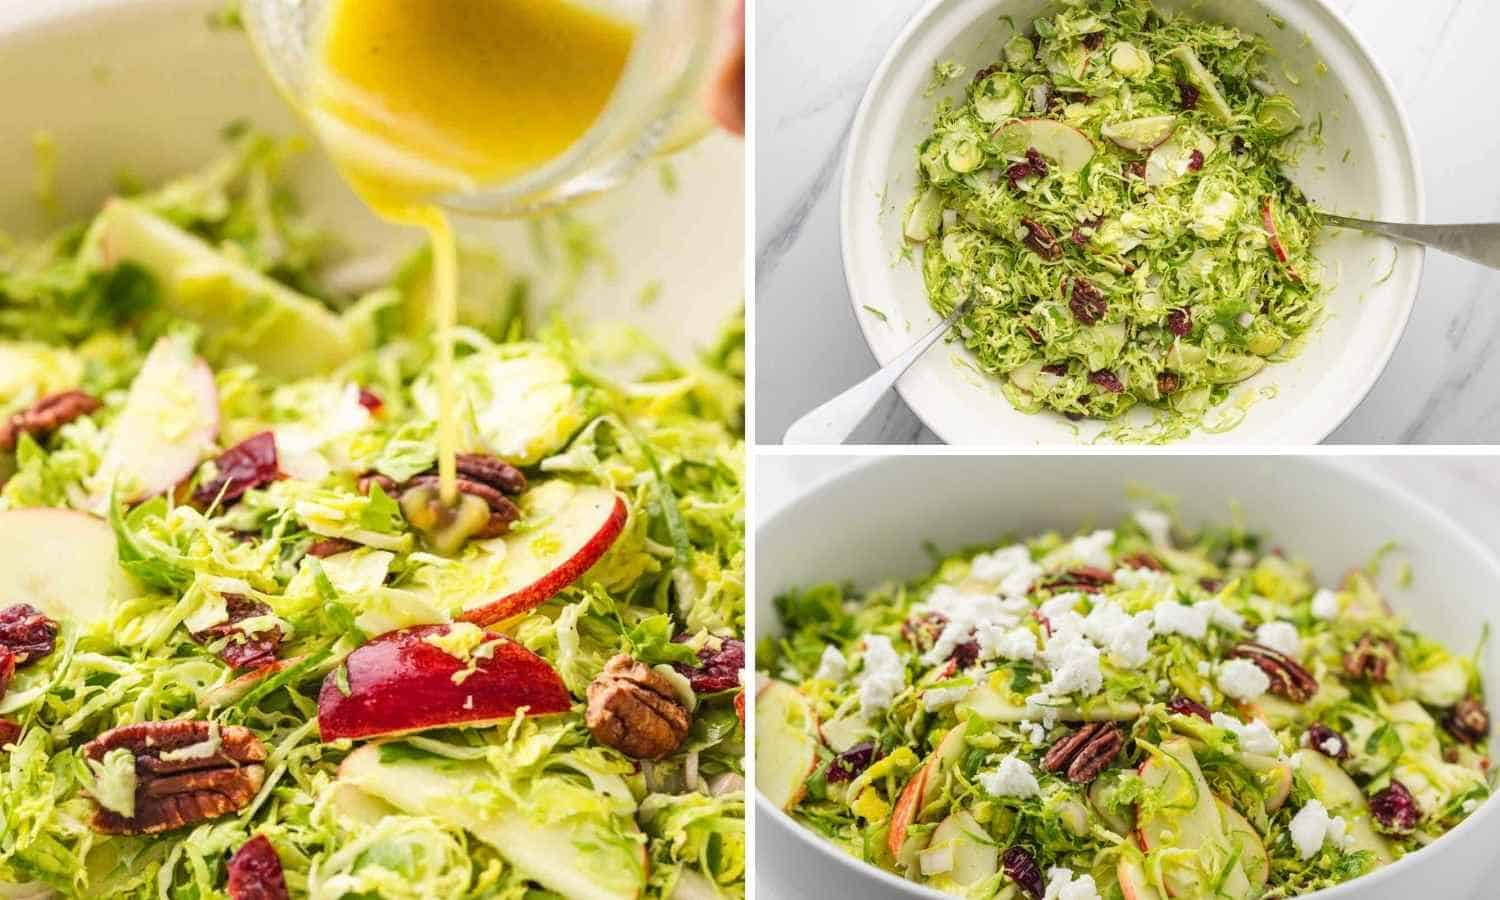 Drizzling dressing over salad, tossing, and topping with cheese.